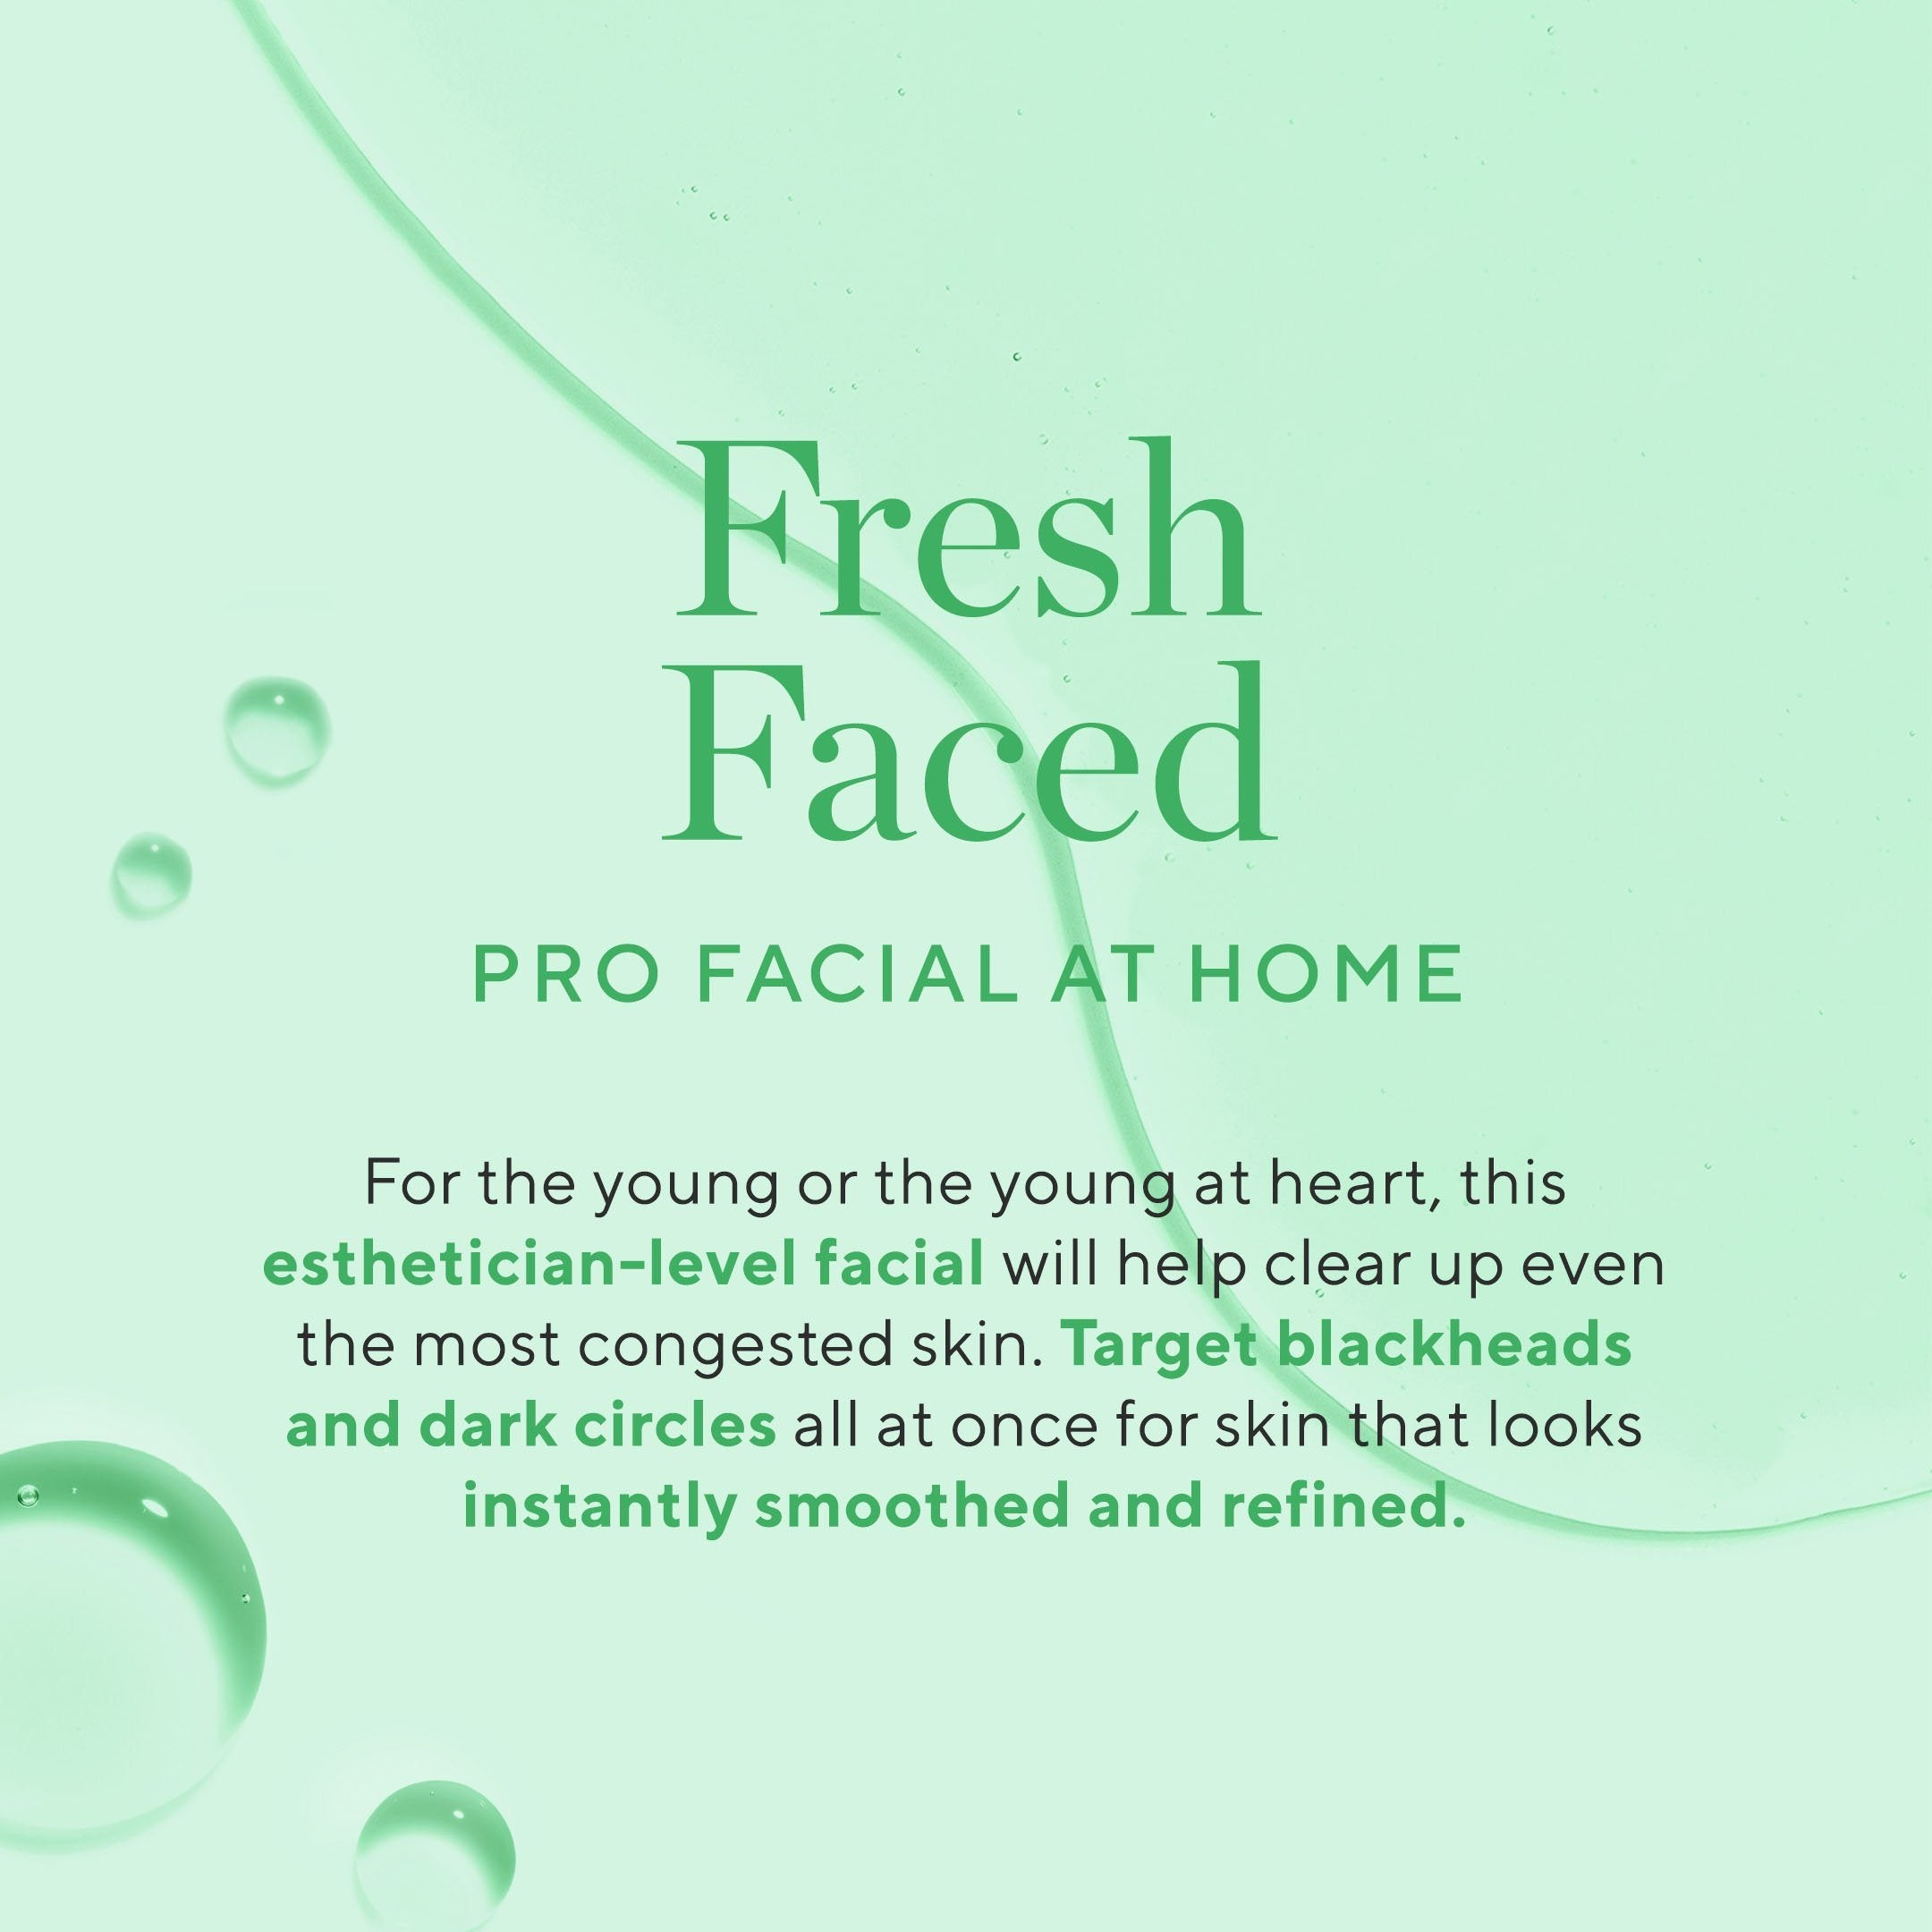 Fresh Faced Facial - HydroPeptide